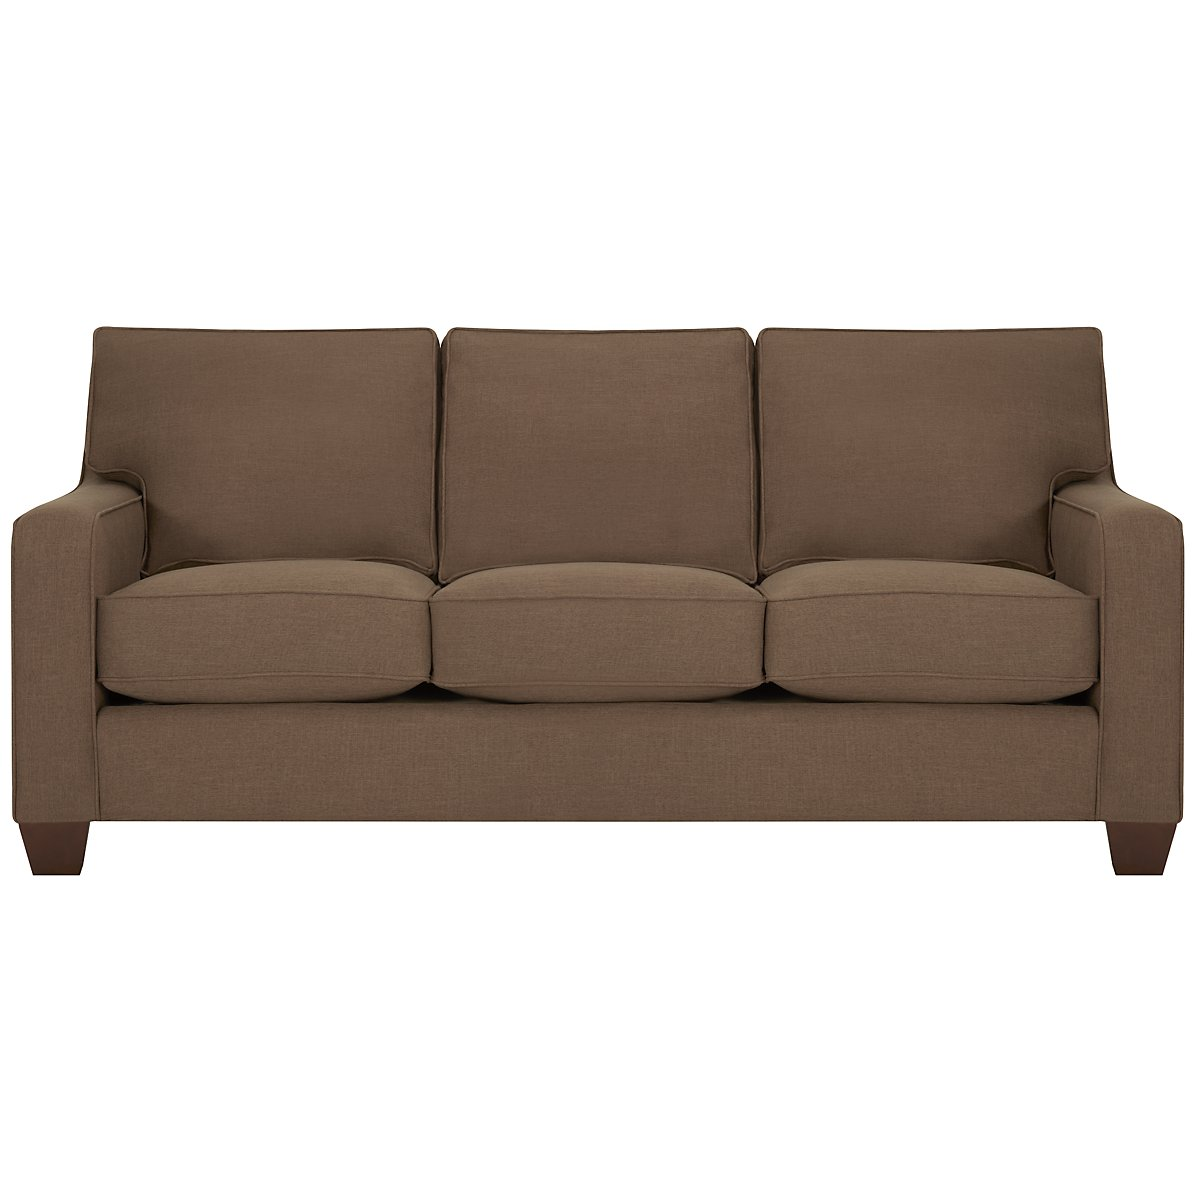 City furniture york dk brown fabric sofa for Brown fabric couch